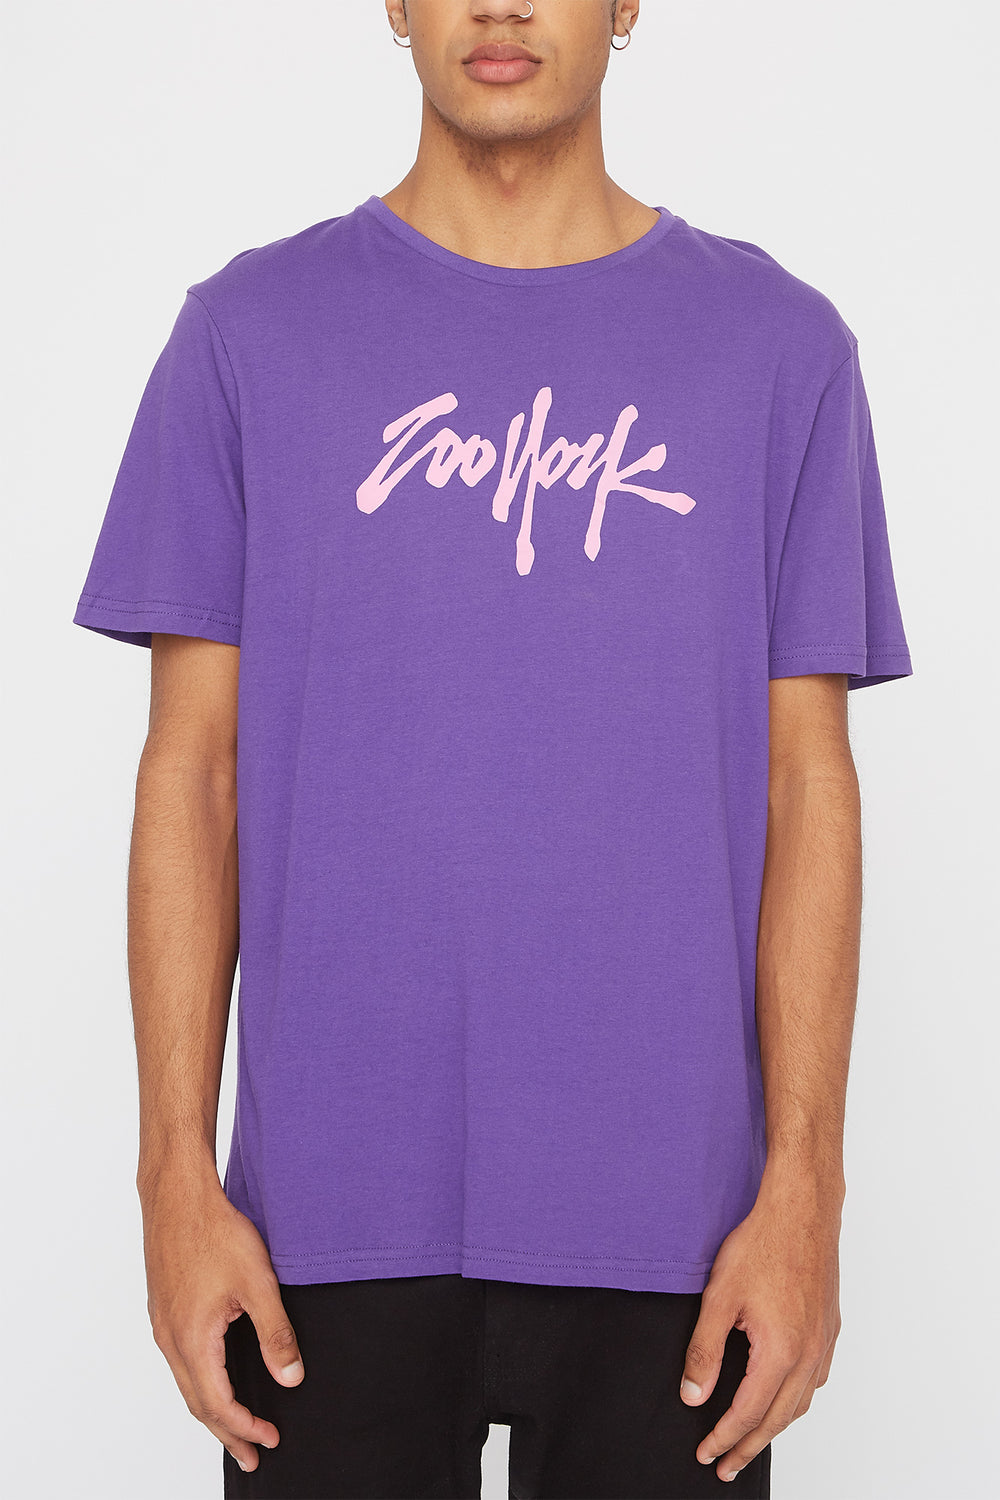 T-Shirt Quartiers NYC Zoo York Homme Violet